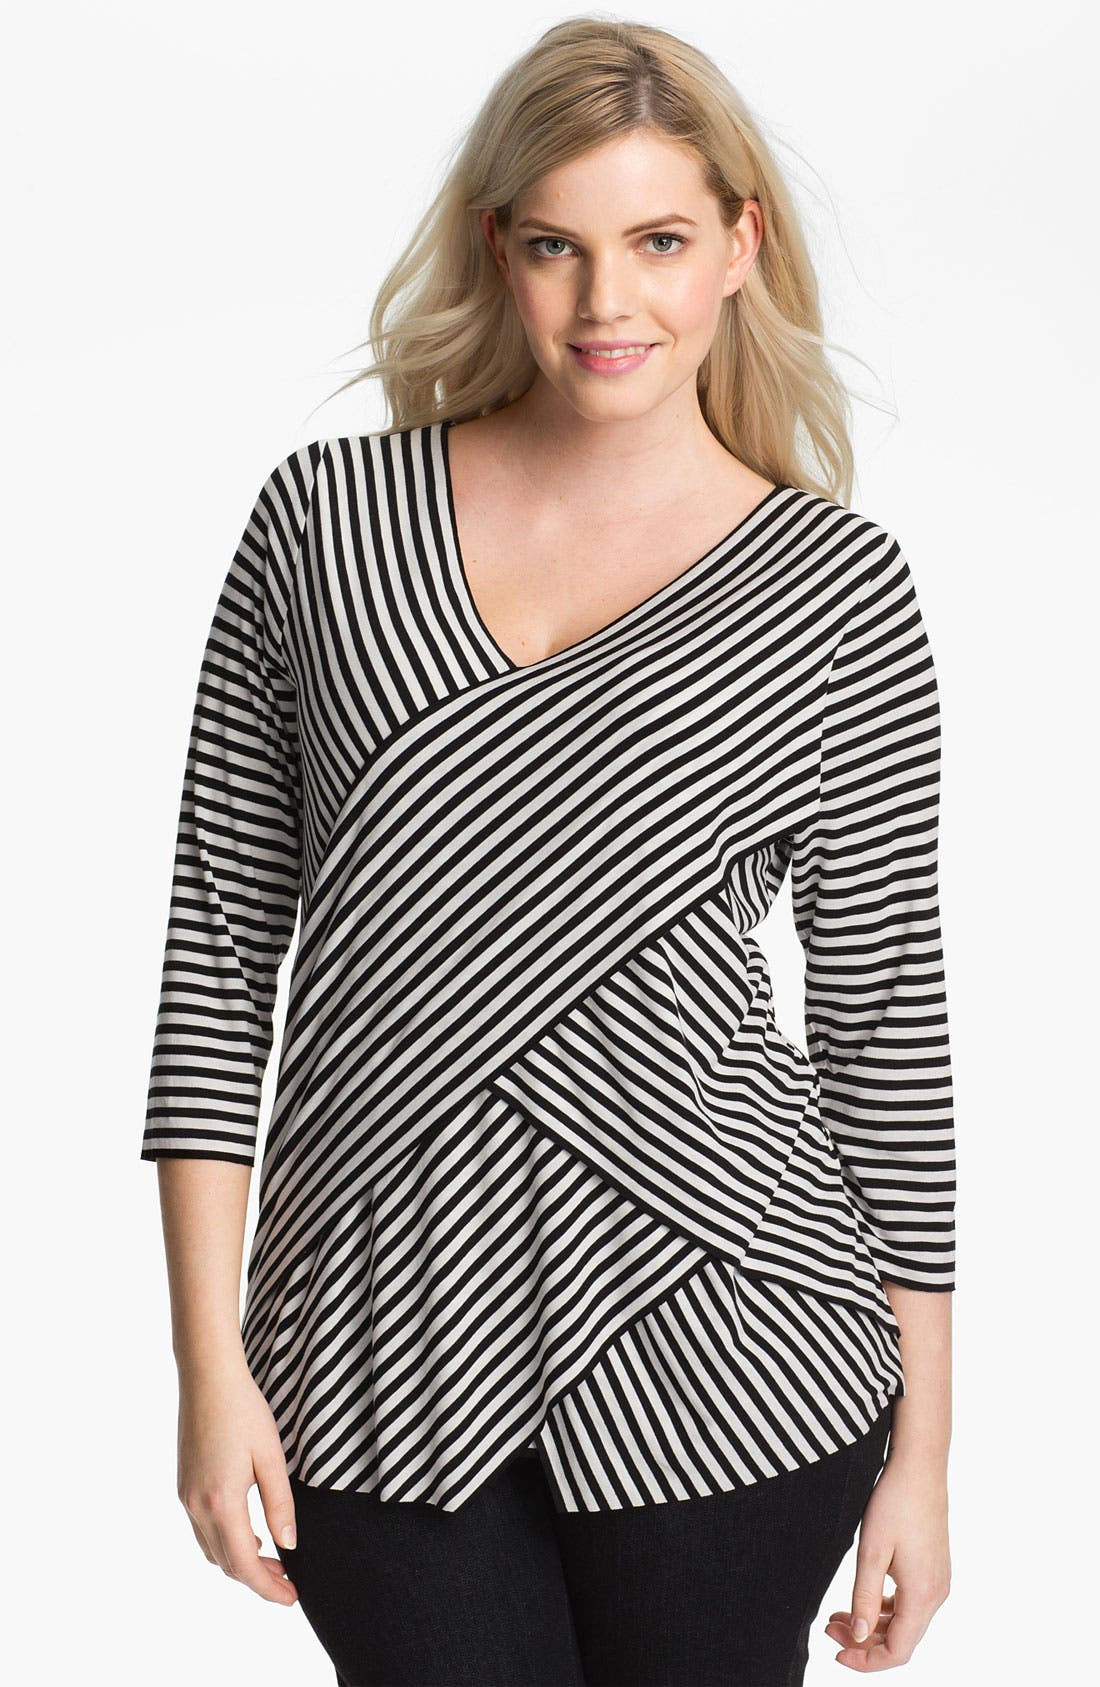 Alternate Image 1 Selected - Vince Camuto Stripe Bandage Top (Plus)